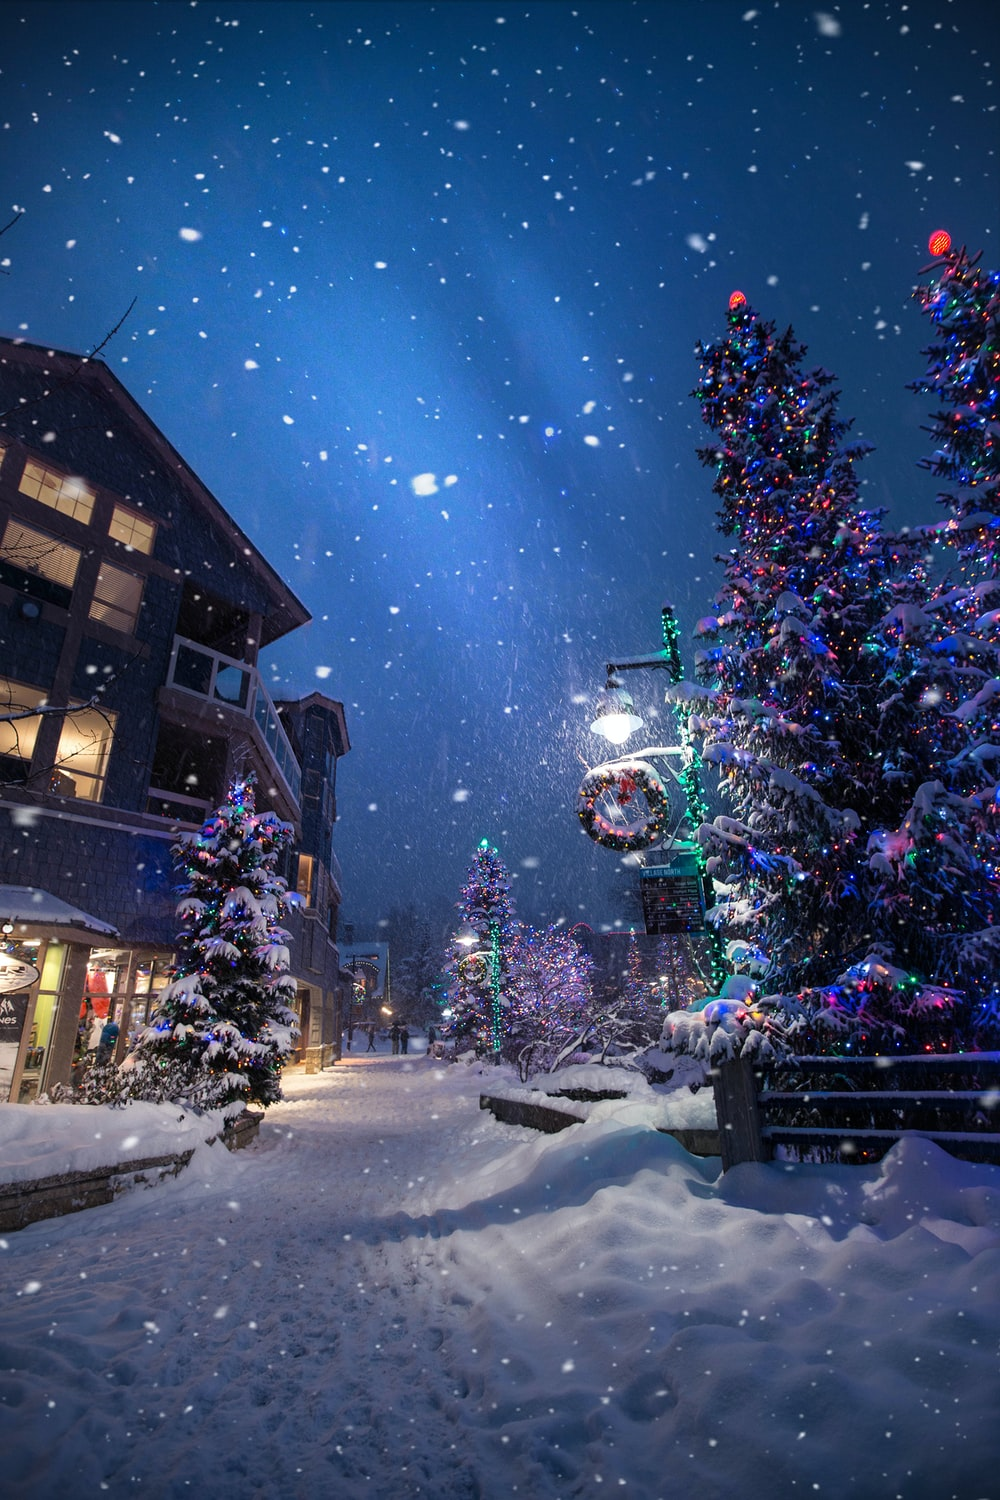 christmas village wallpaper - Images For Christmas